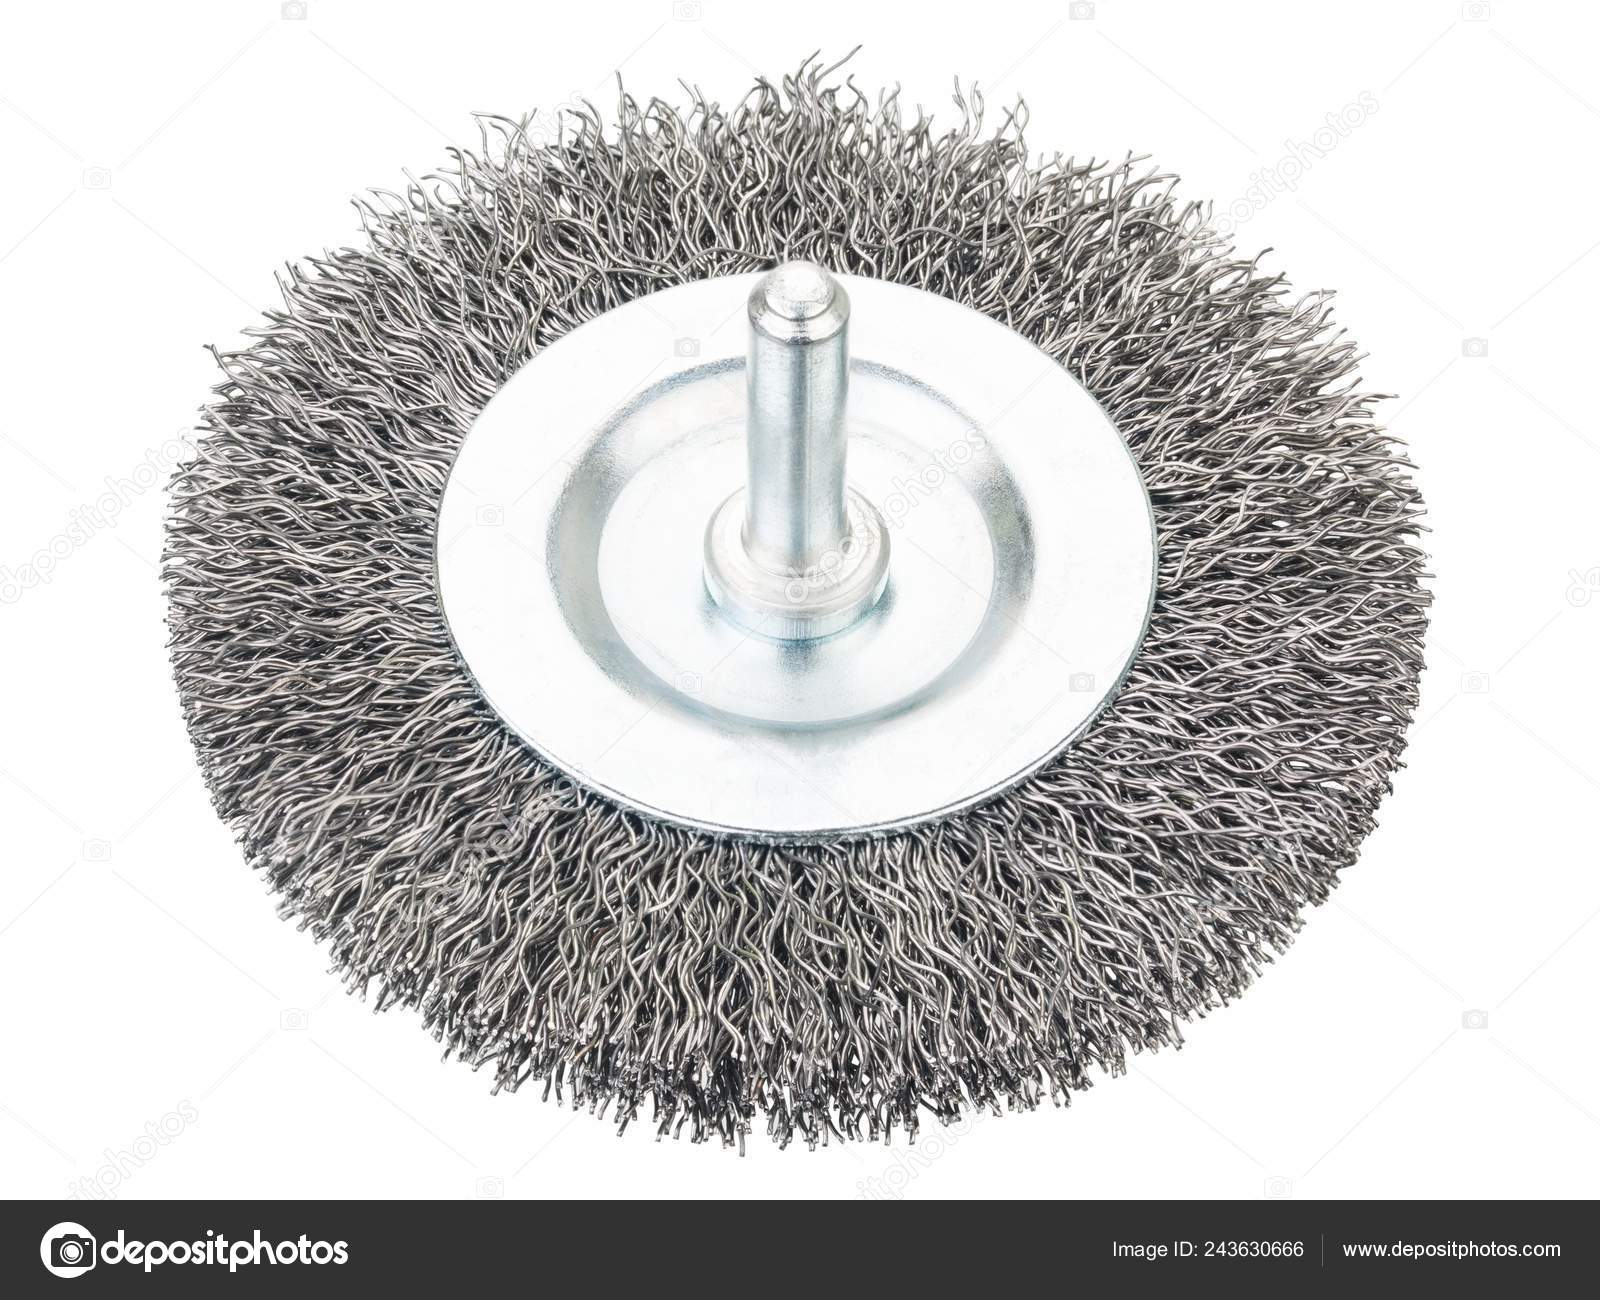 Wondrous Crimped Wire Bench Grinder Wheel On White Stock Photo Andrewgaddart Wooden Chair Designs For Living Room Andrewgaddartcom